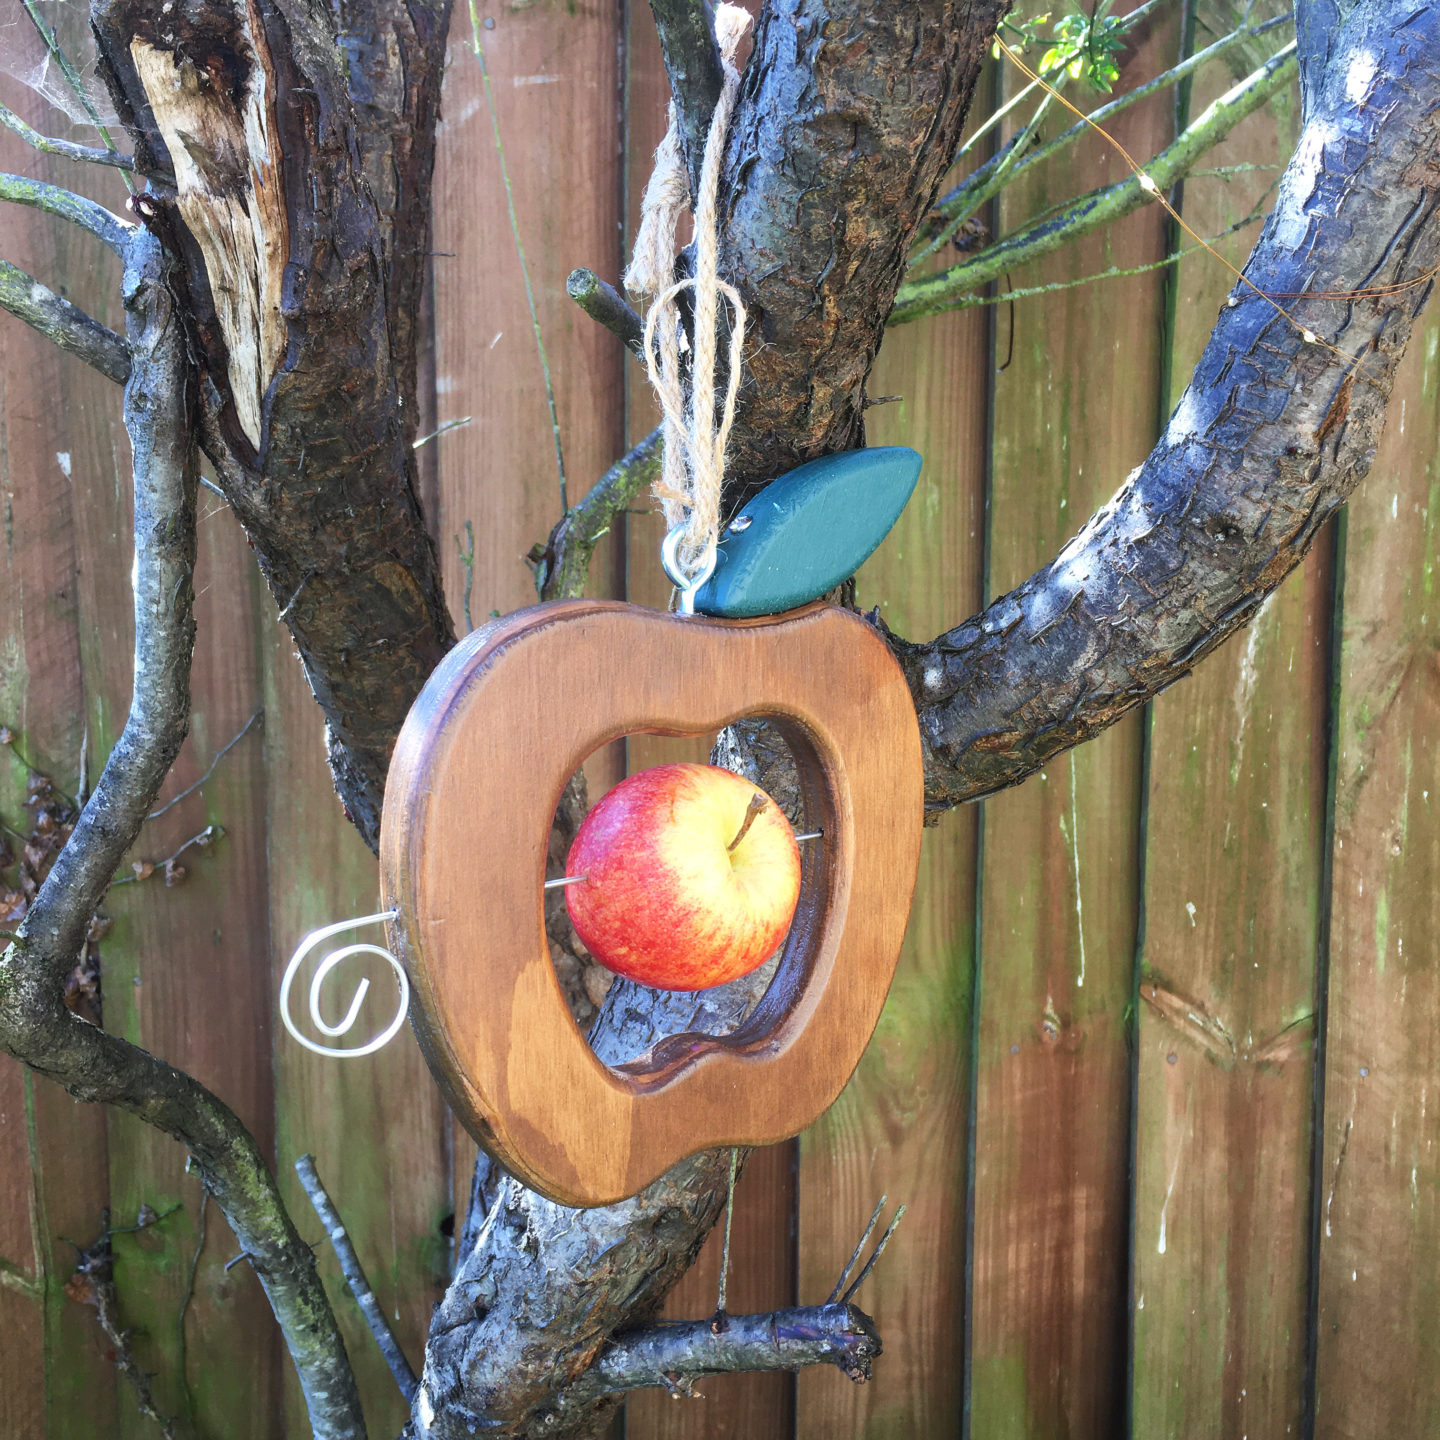 Eco apple bird feeder hanging from a tree branch